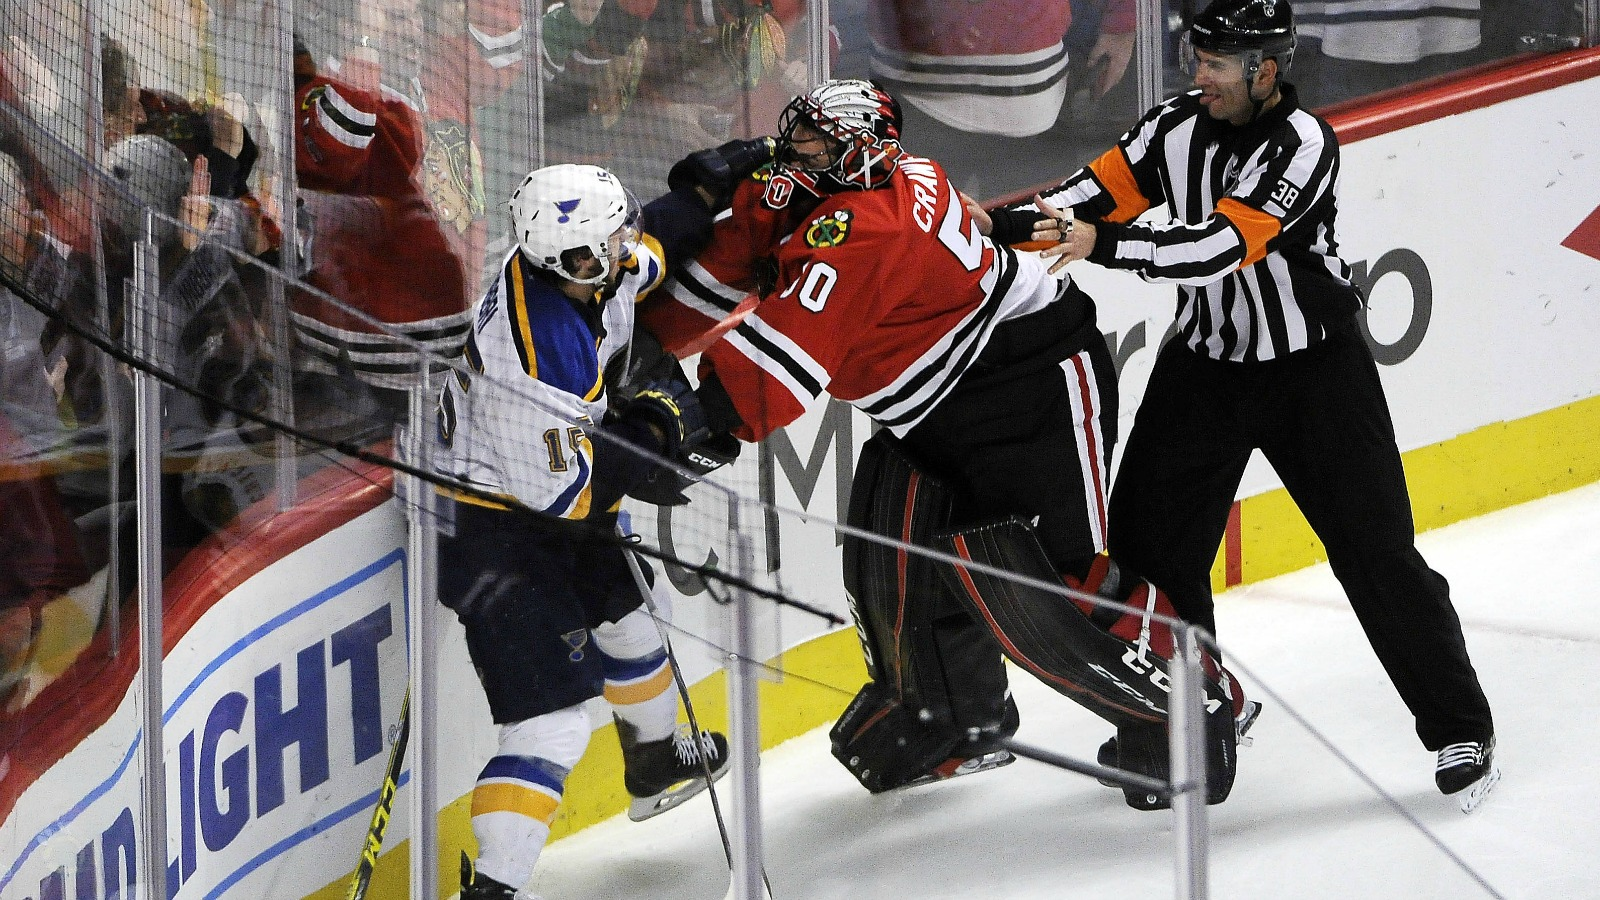 Blackhawks goalie Corey Crawford starts a brawl after collision at net